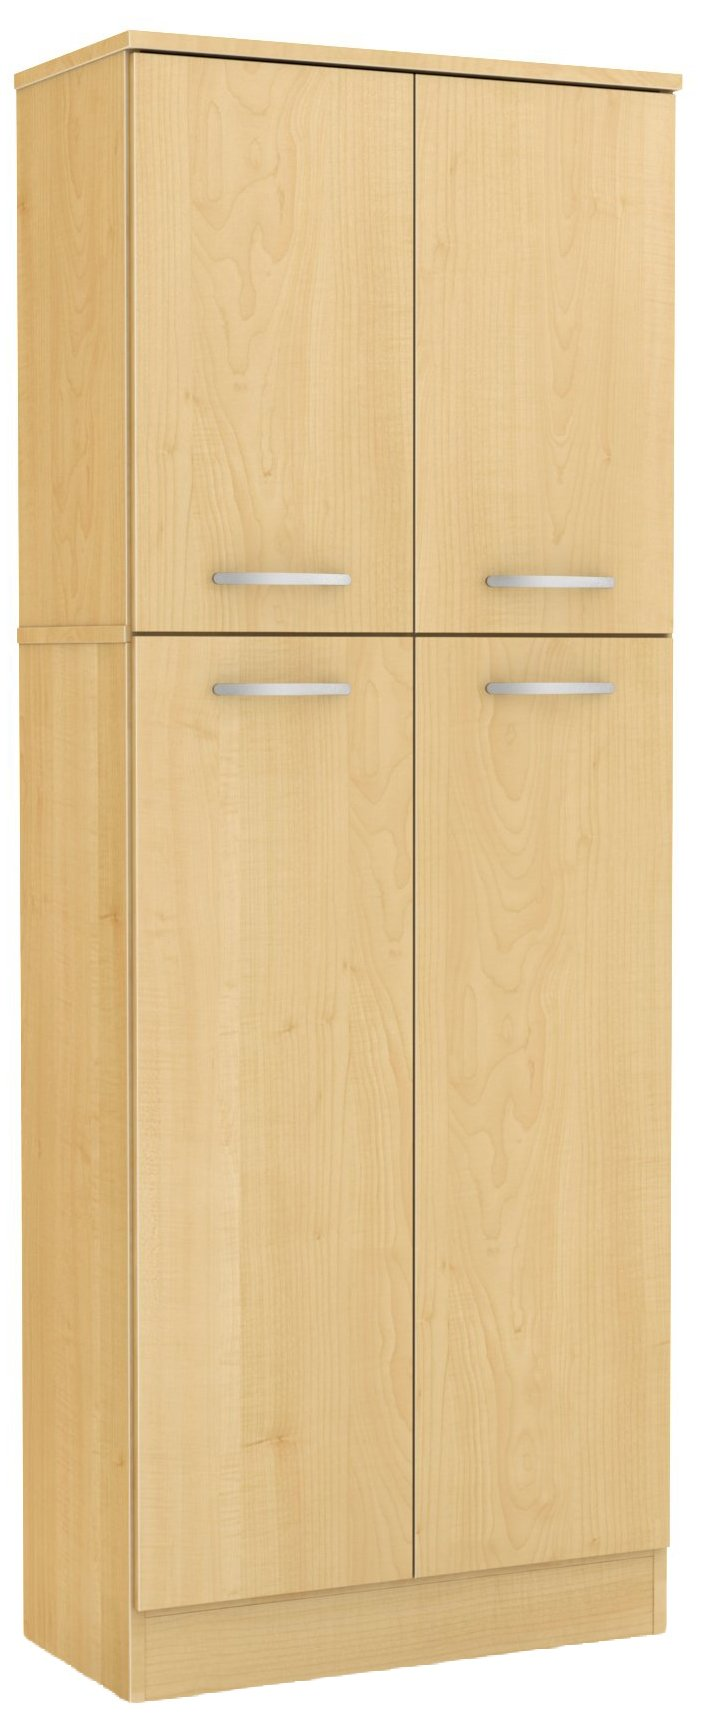 South Shore 4-Door Storage Pantry with Adjustable Shelves, Natural Maple by South Shore